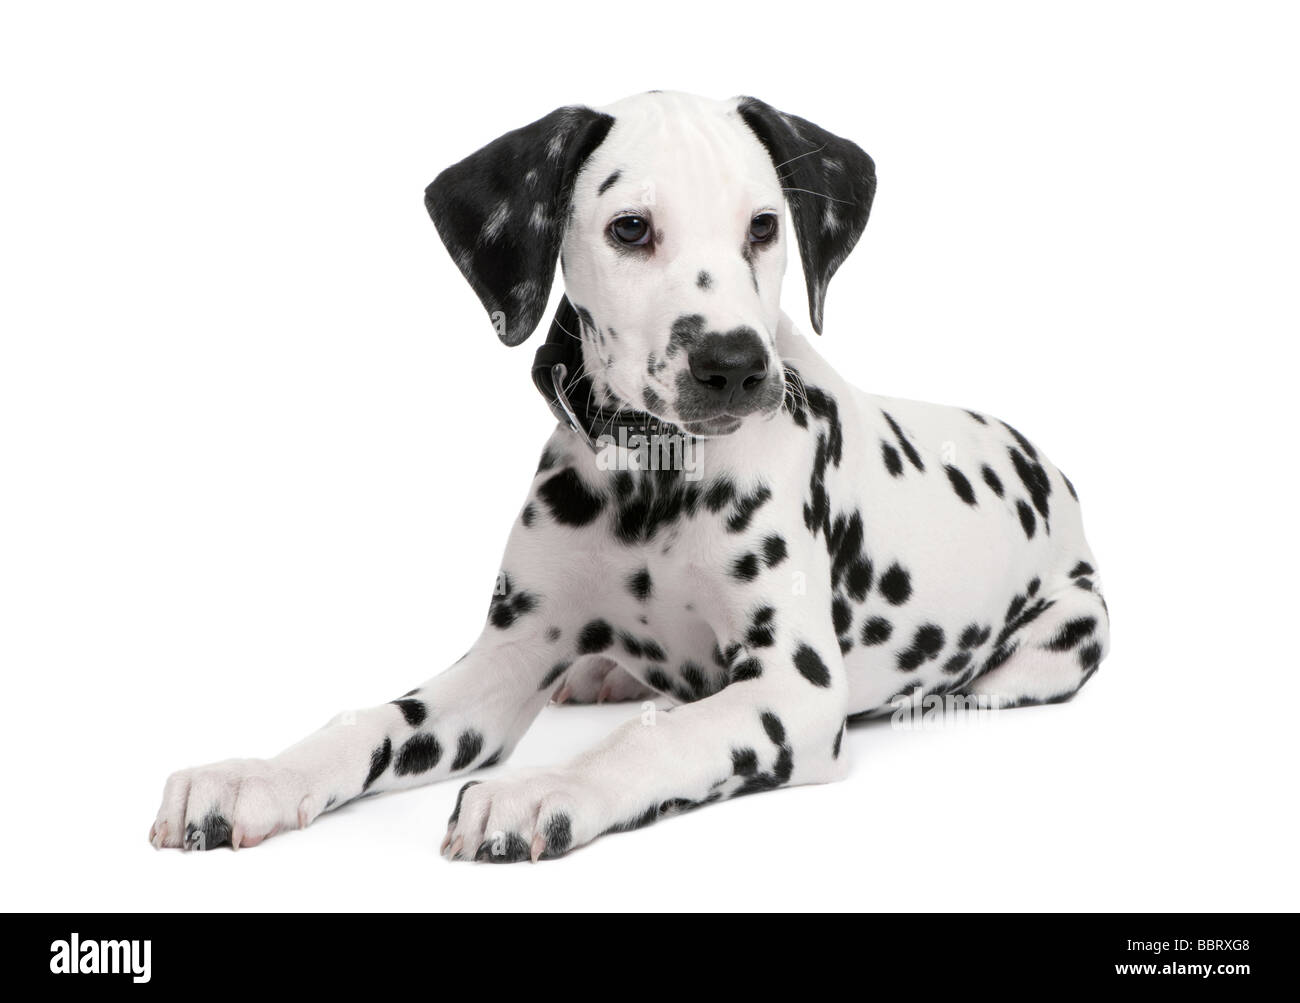 Dalmatian puppy in front of a white background - Stock Image